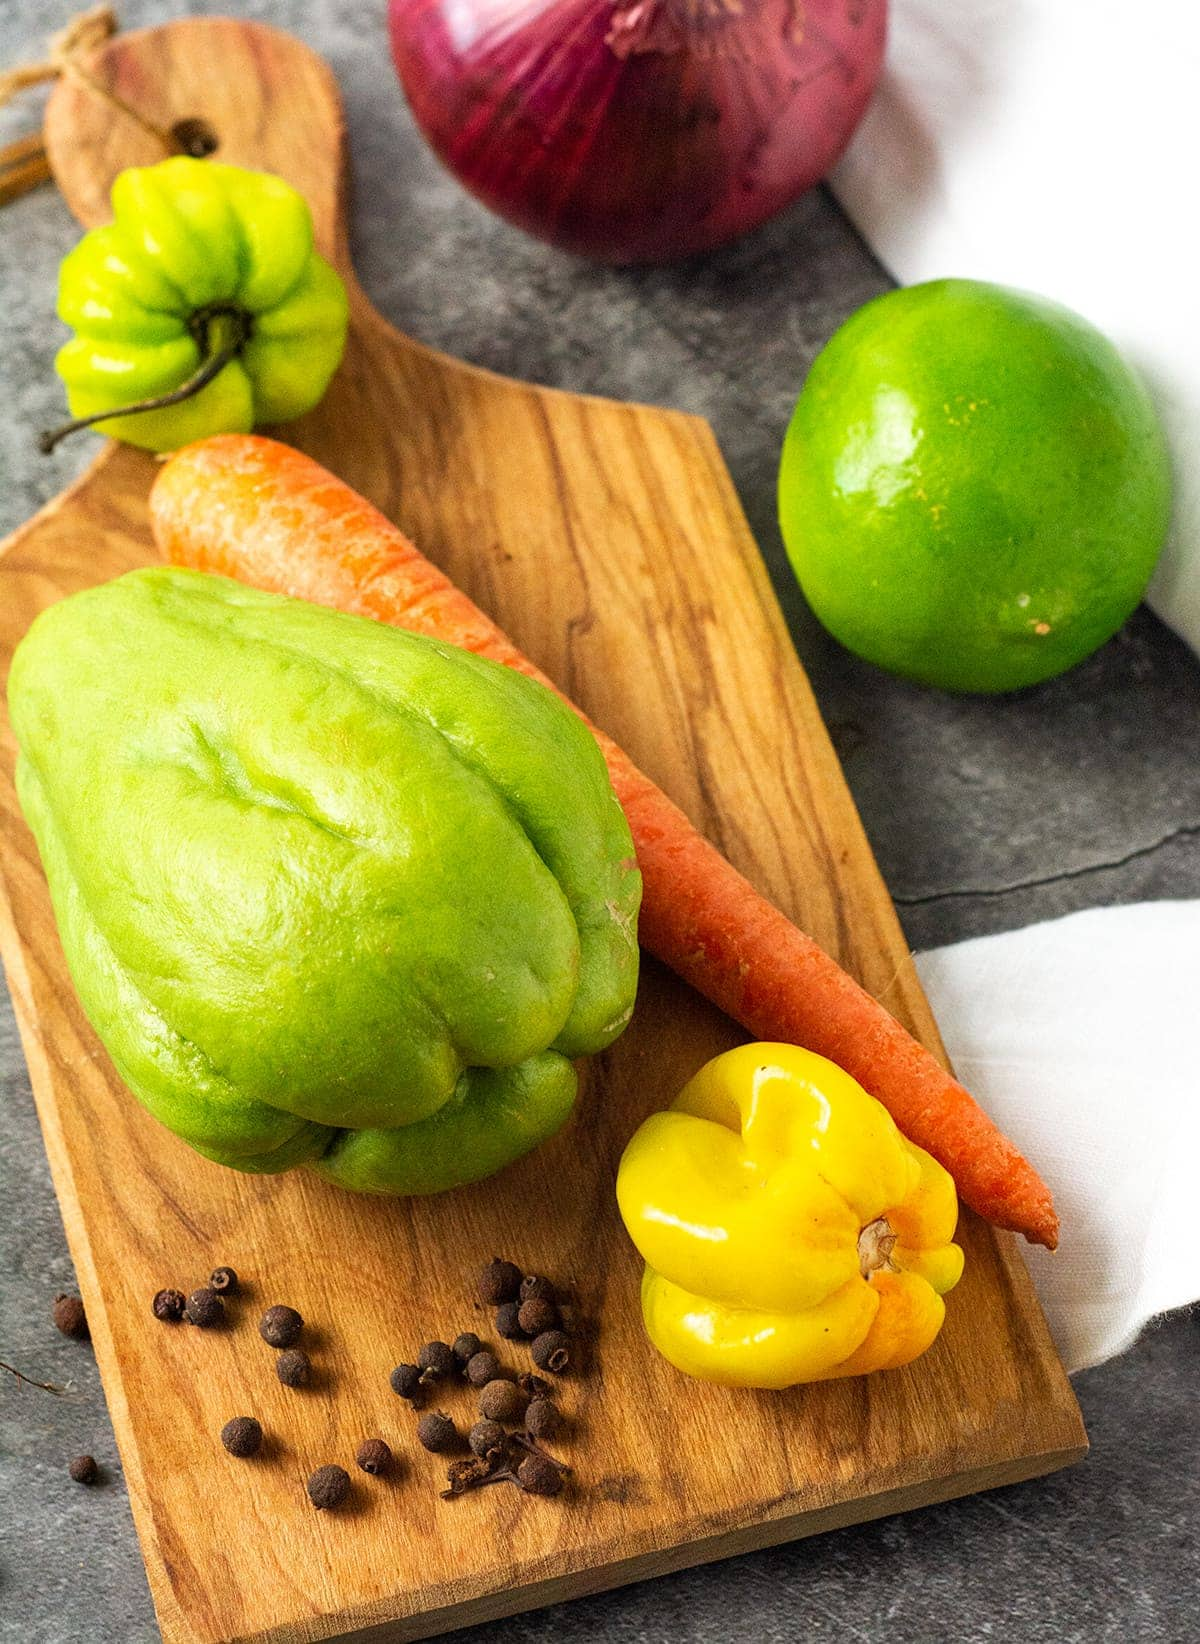 Carrot, chocho, onion, scotch bonnet pepper, pimento and lime on a cutting board on a grey background